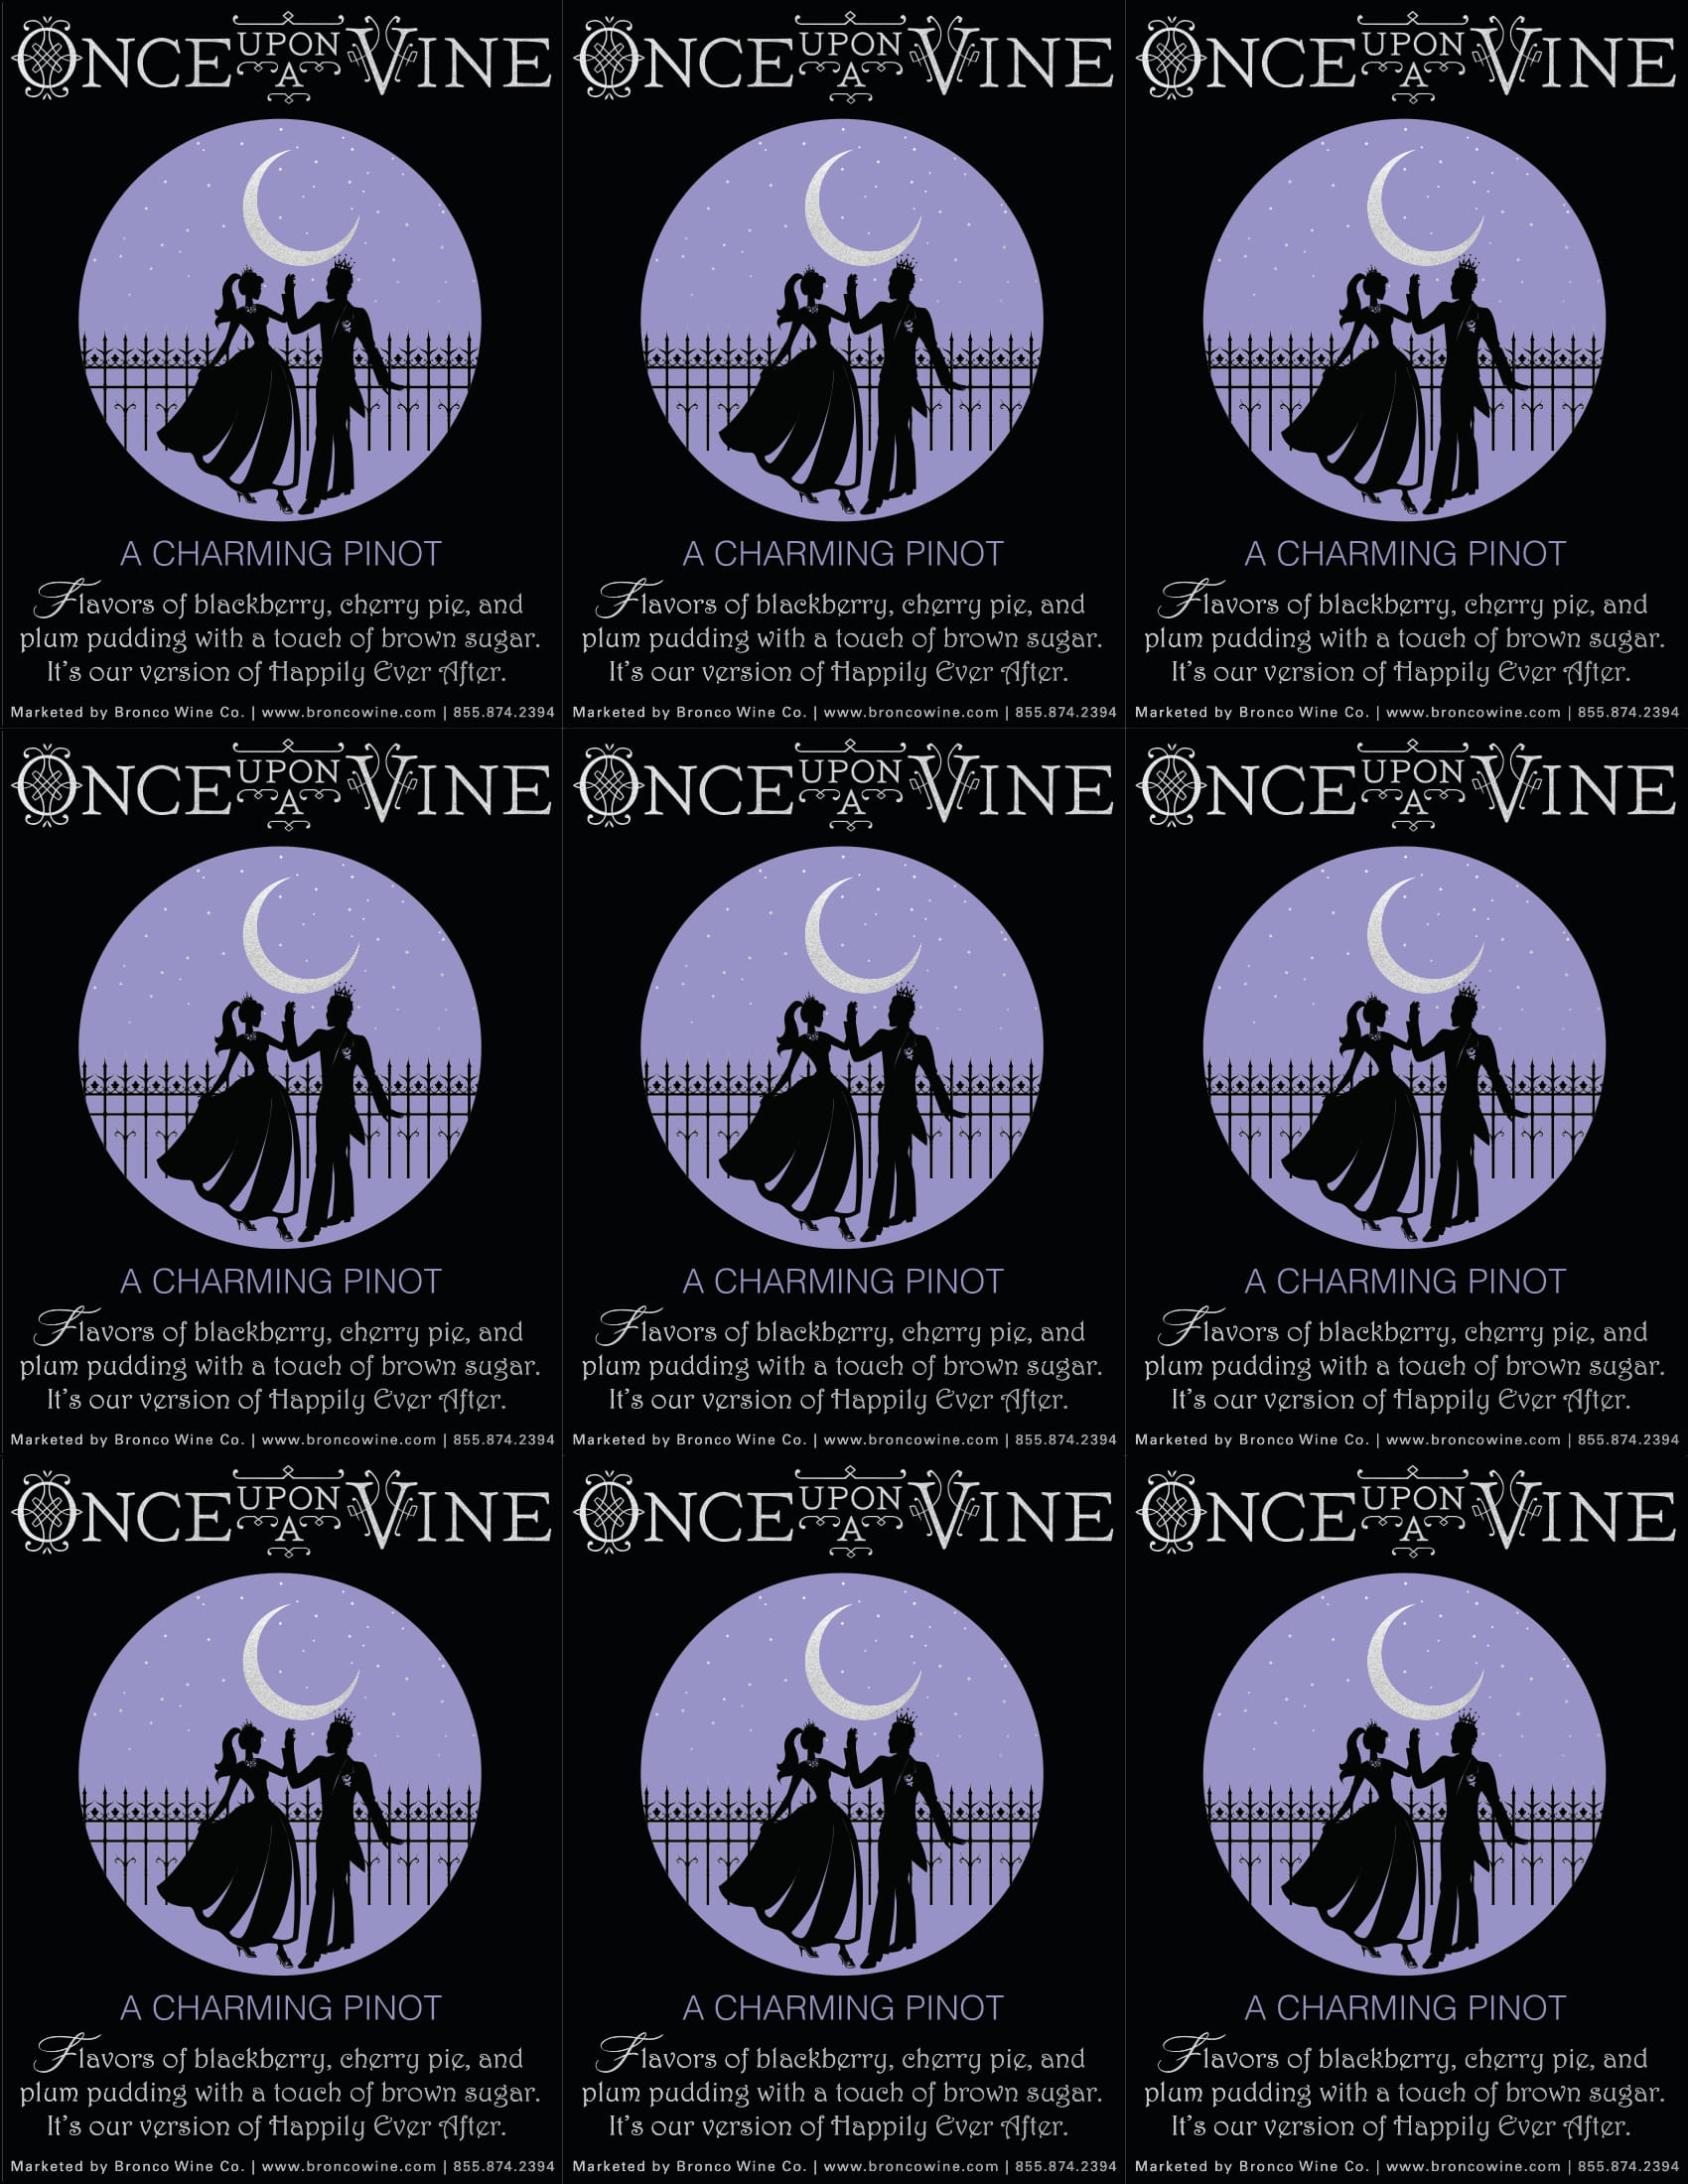 Once Upon A Vine A Charming Pinot Shelf Talker